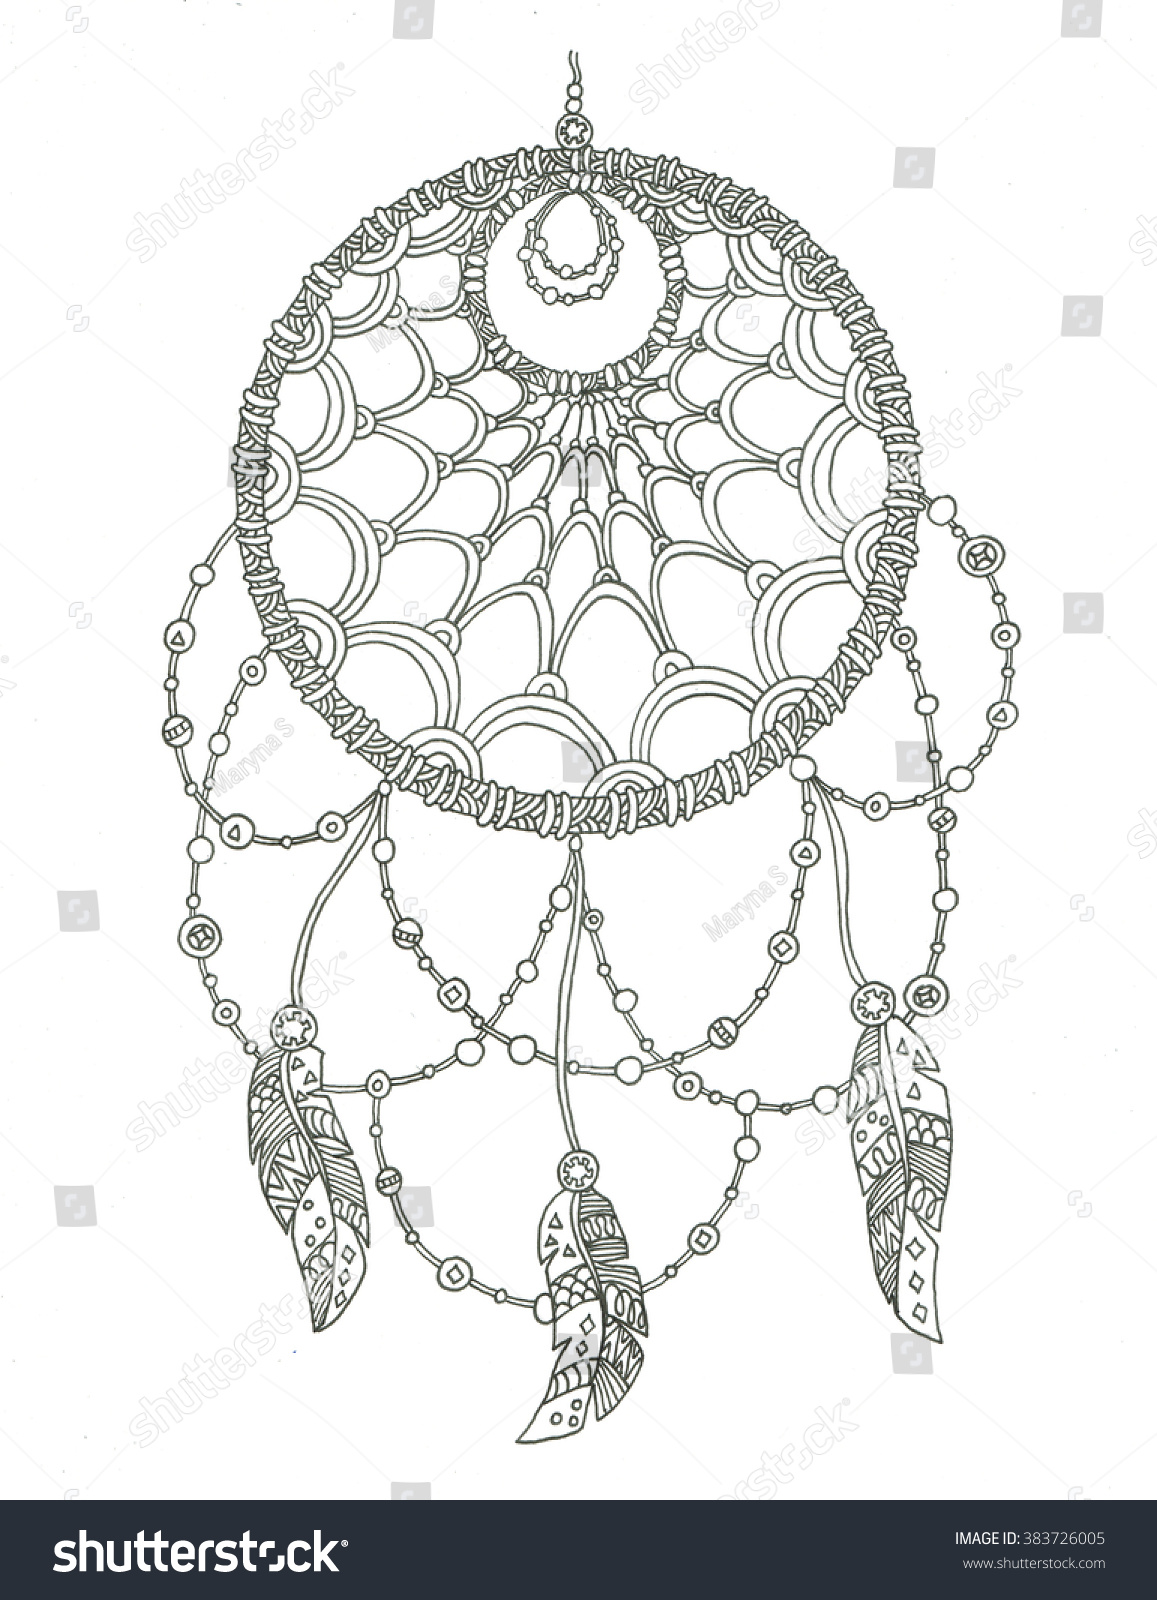 Dream Catcher Coloring Book Pages Dreamcatcher Colouring Sheets